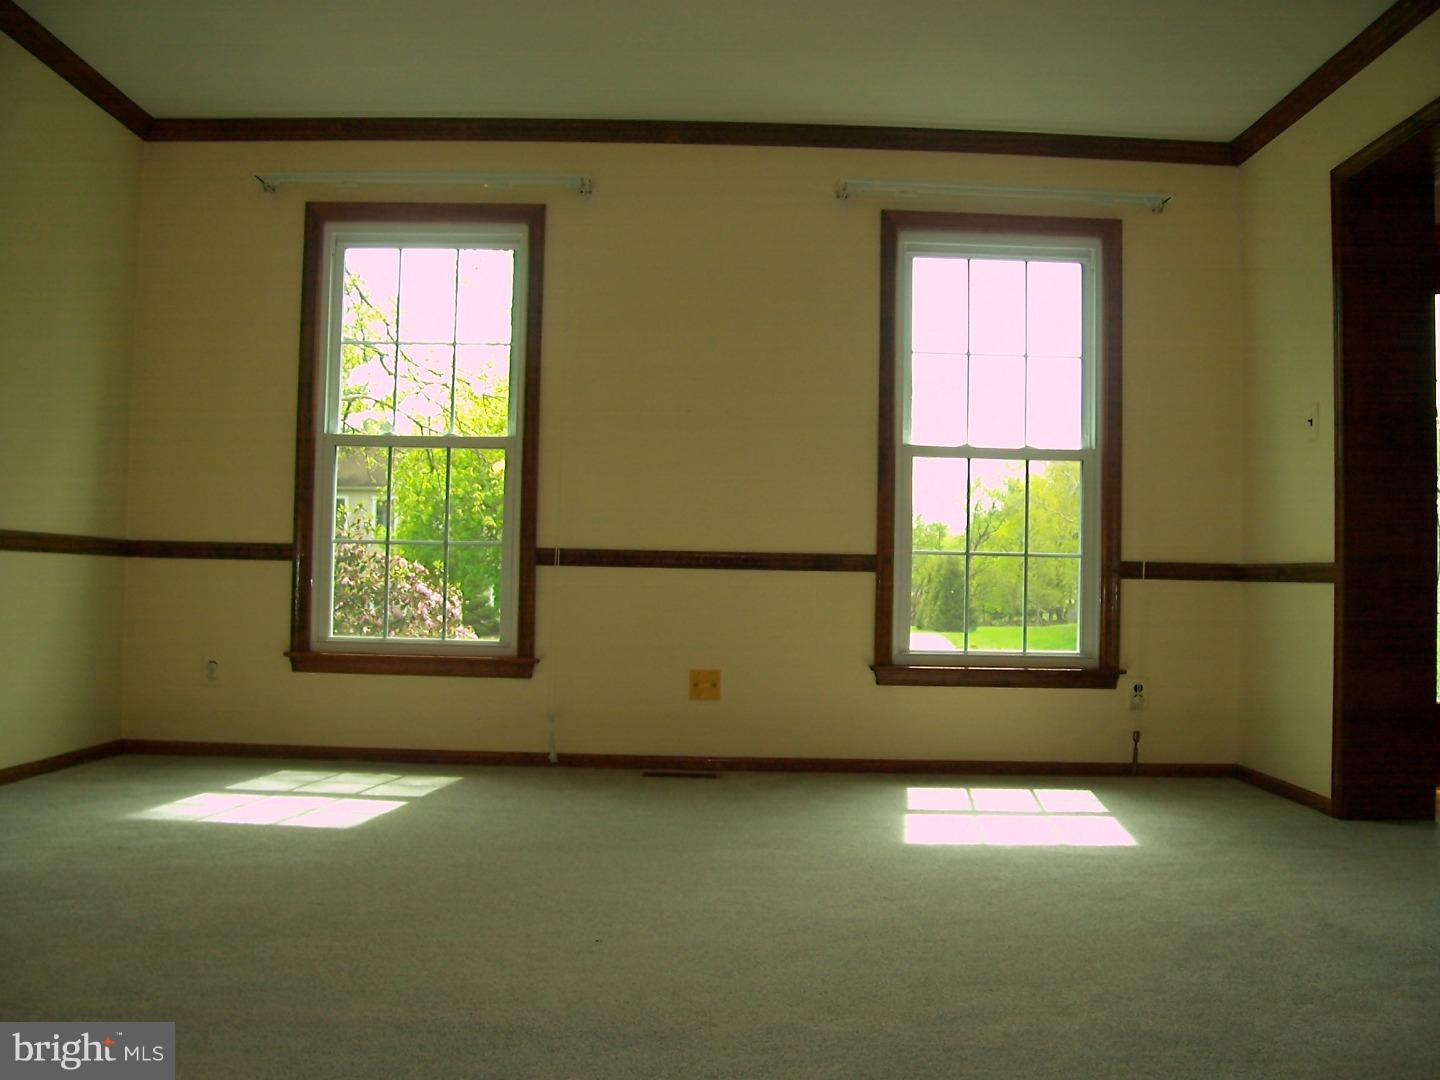 Additional photo for property listing at 22 WINTHROP Road  Lawrenceville, New Jersey 08648 United States